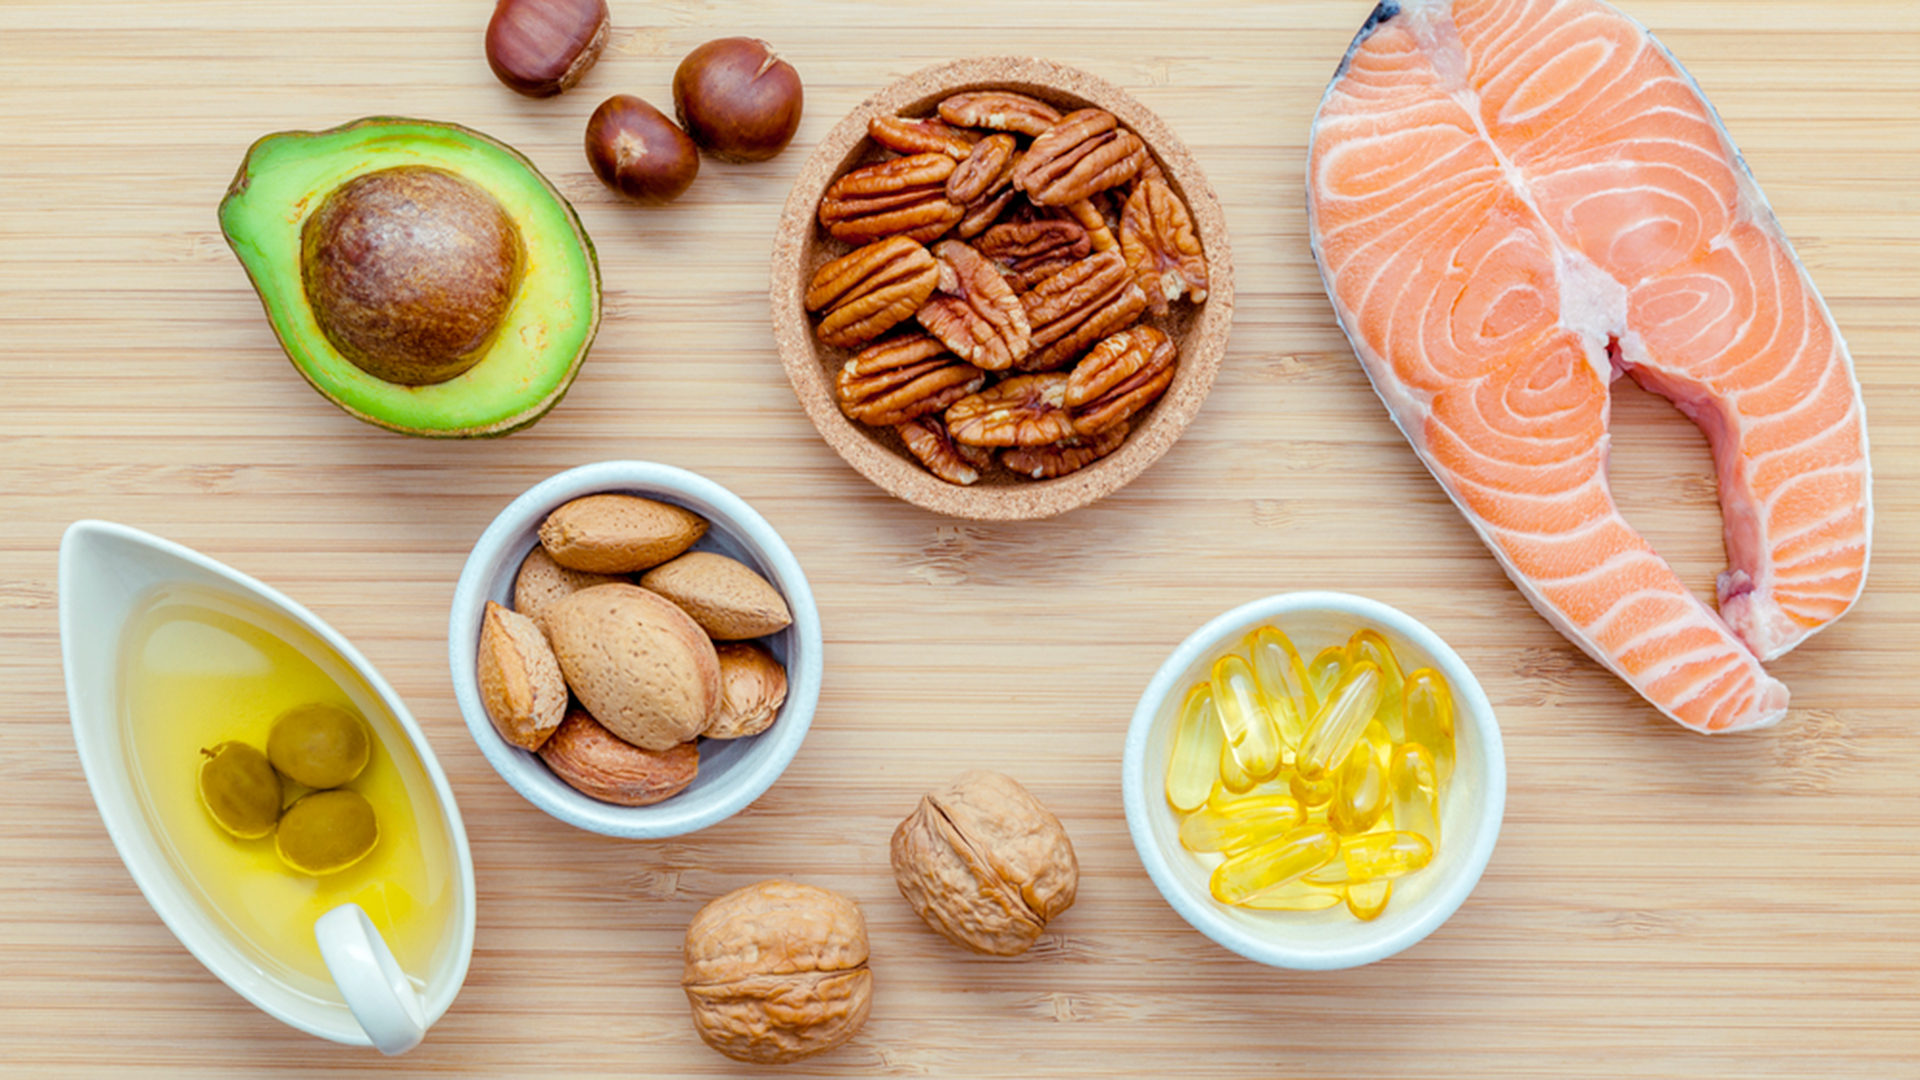 More fruits and nuts, less salt and meat, can affect your heart disease risk